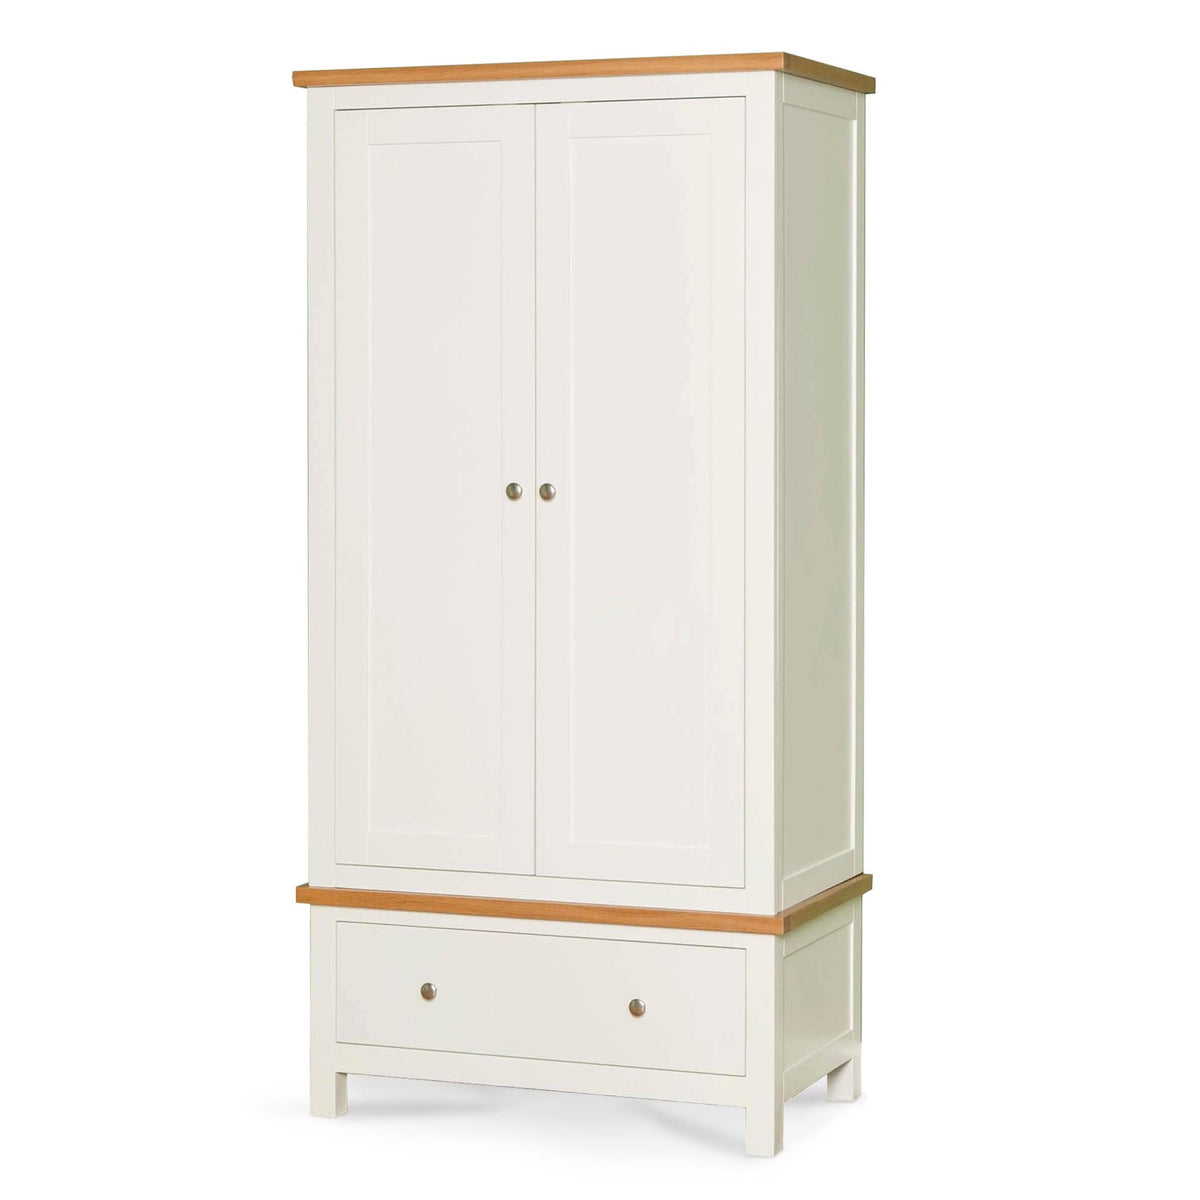 Farrow White Double Wardrobe - Side view